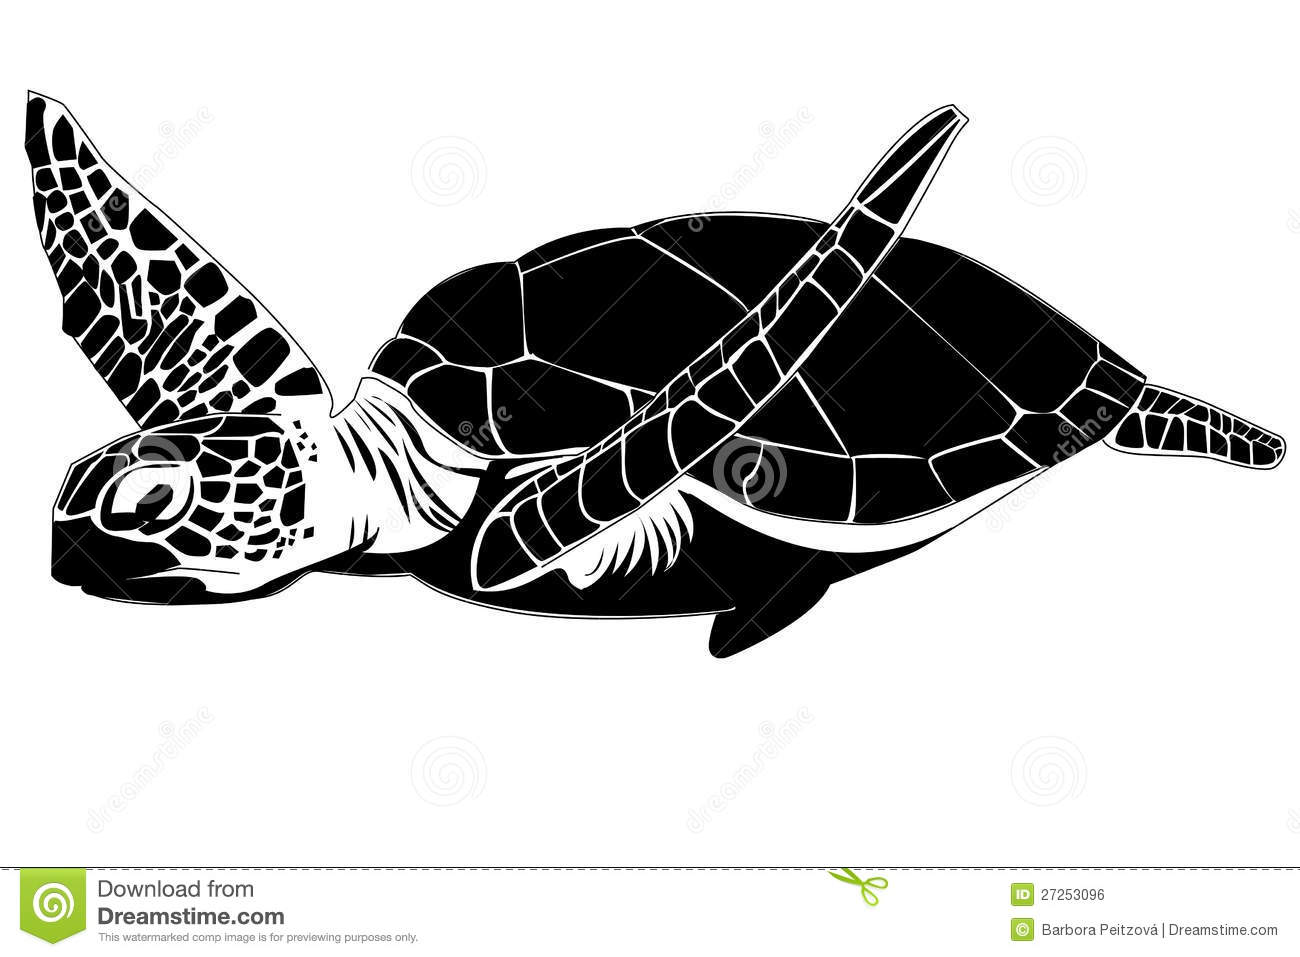 Sea Turtle Royalty Free Stock Image - Image: 27253096